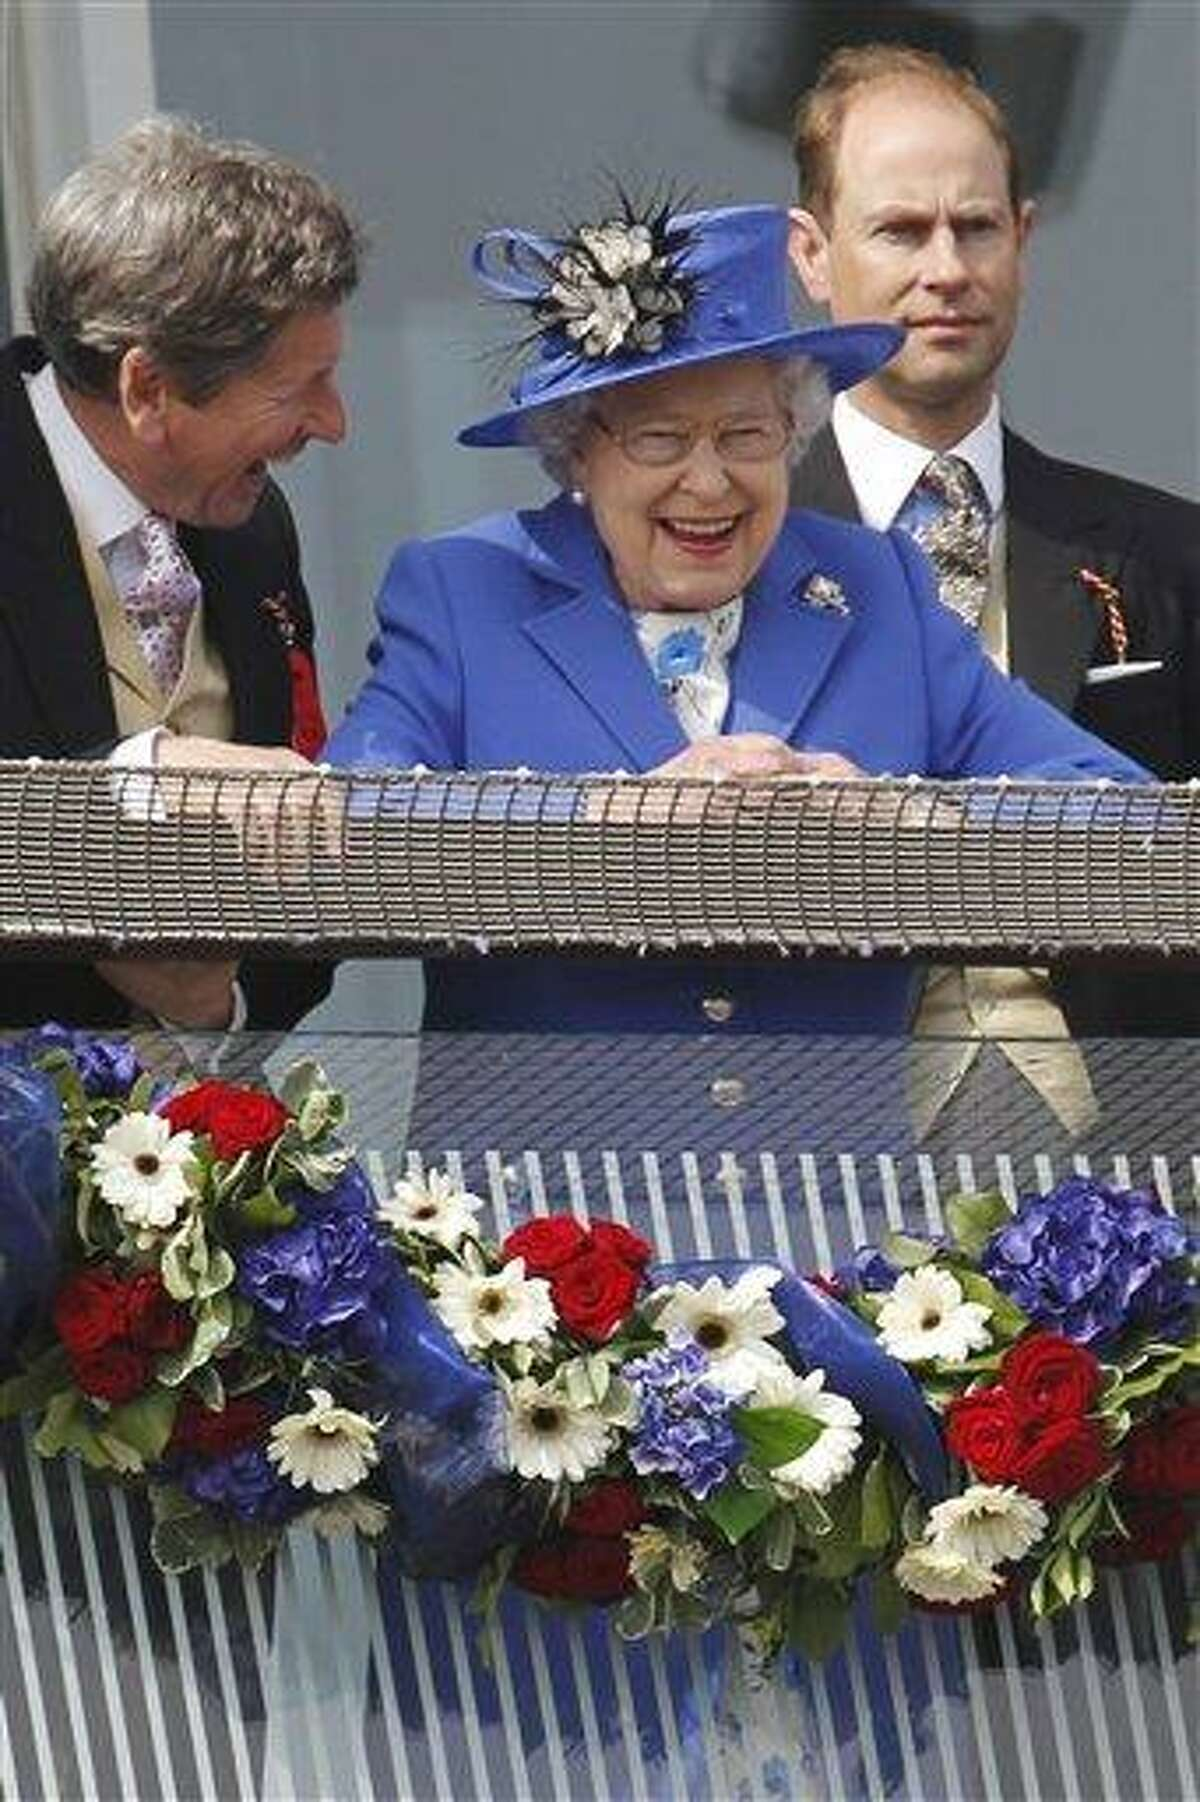 Britain's Queen Elizabeth II, center, reacts as she looks out from the balcony at the end of the Epsom Derby horse race Saturday at Epsom racecourse England at the start of a four-day Diamond Jubilee celebration to mark the 60th anniversary of her accession to the throne. Associated Press